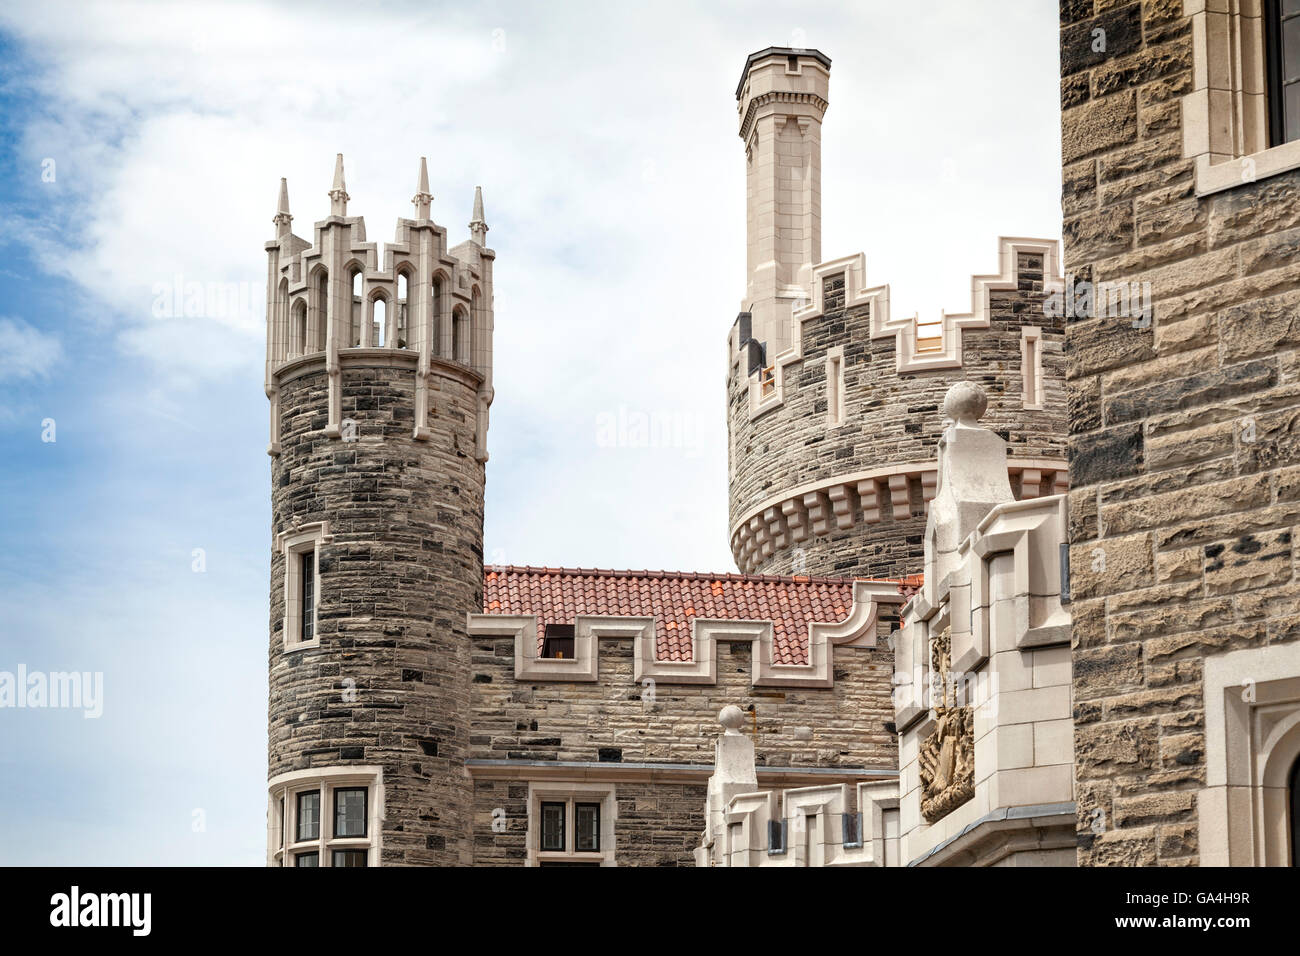 The turret of the Casa Loma building in Toronto in Canada. It has a fairytale appearance and is a popular tourist - Stock Image